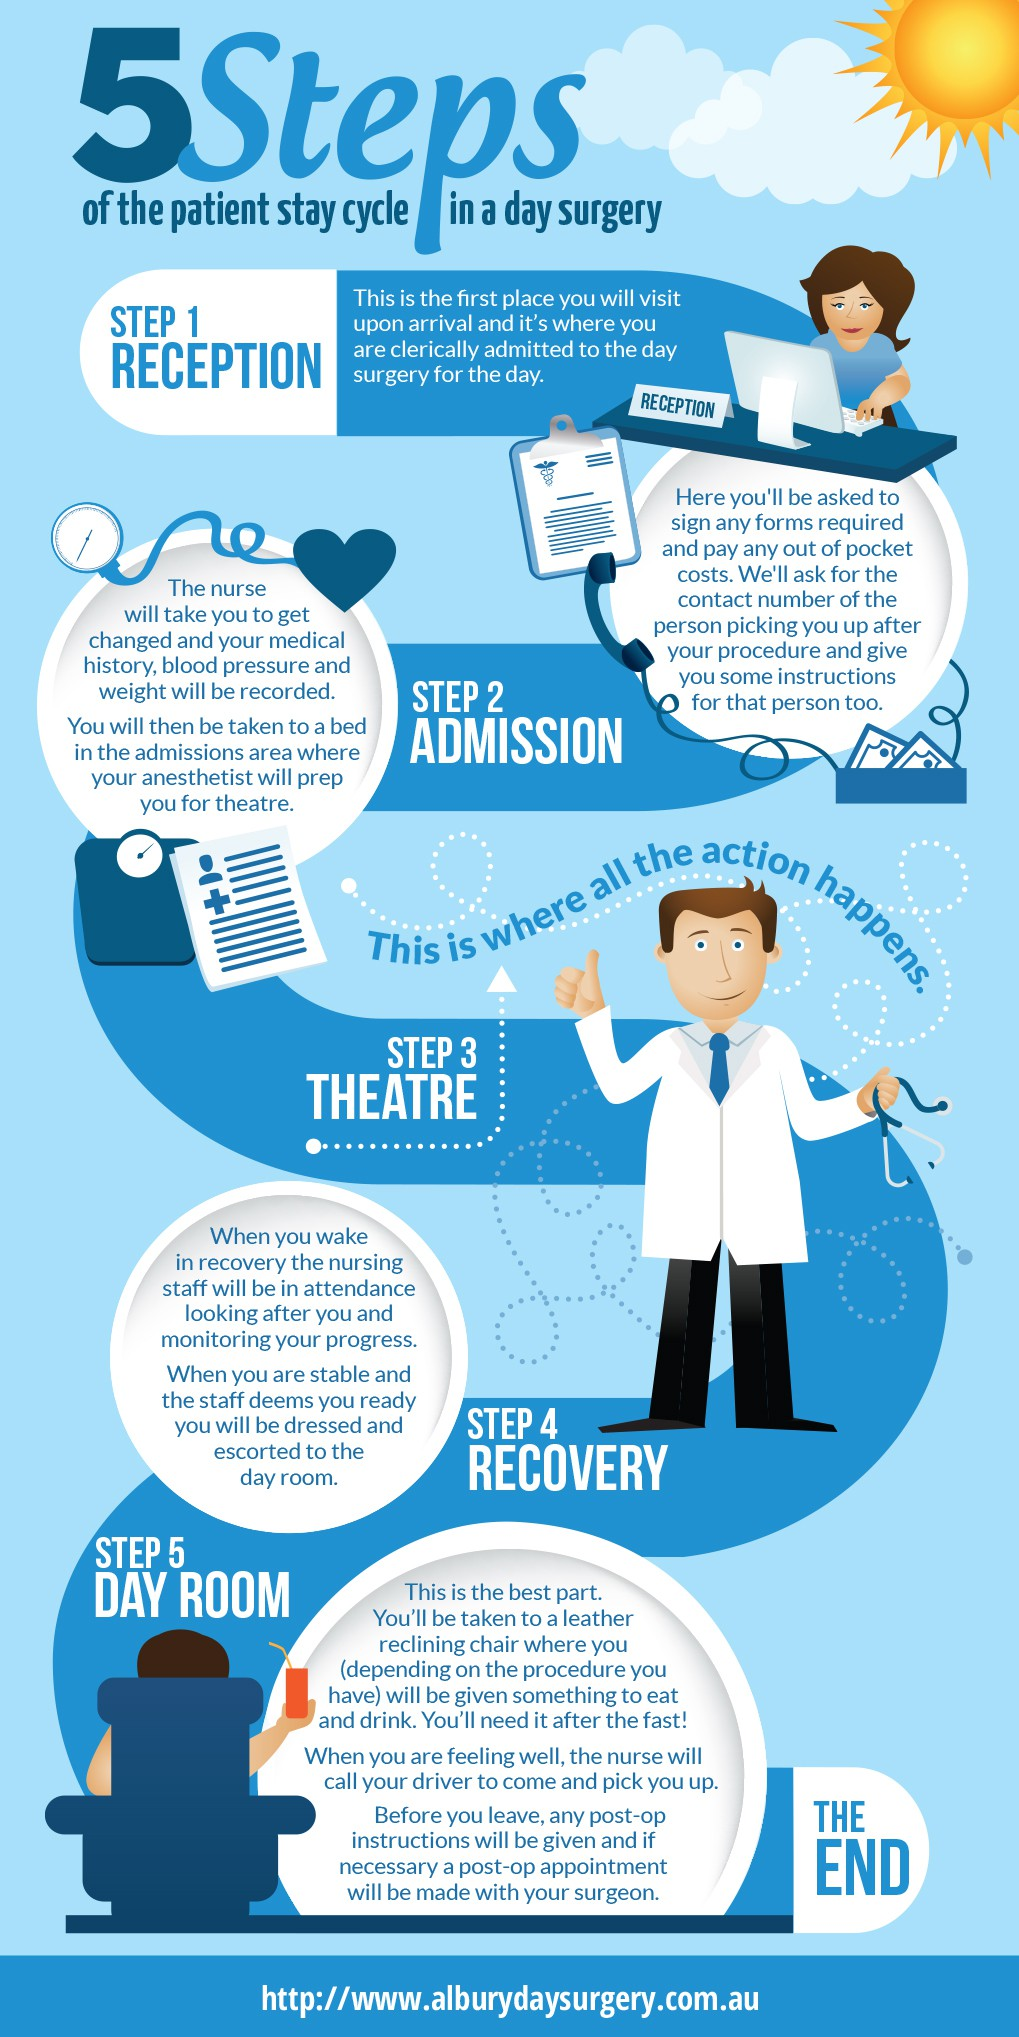 Interesting opportunity - create an infographic depicting the patient stay cycle in a day surgery